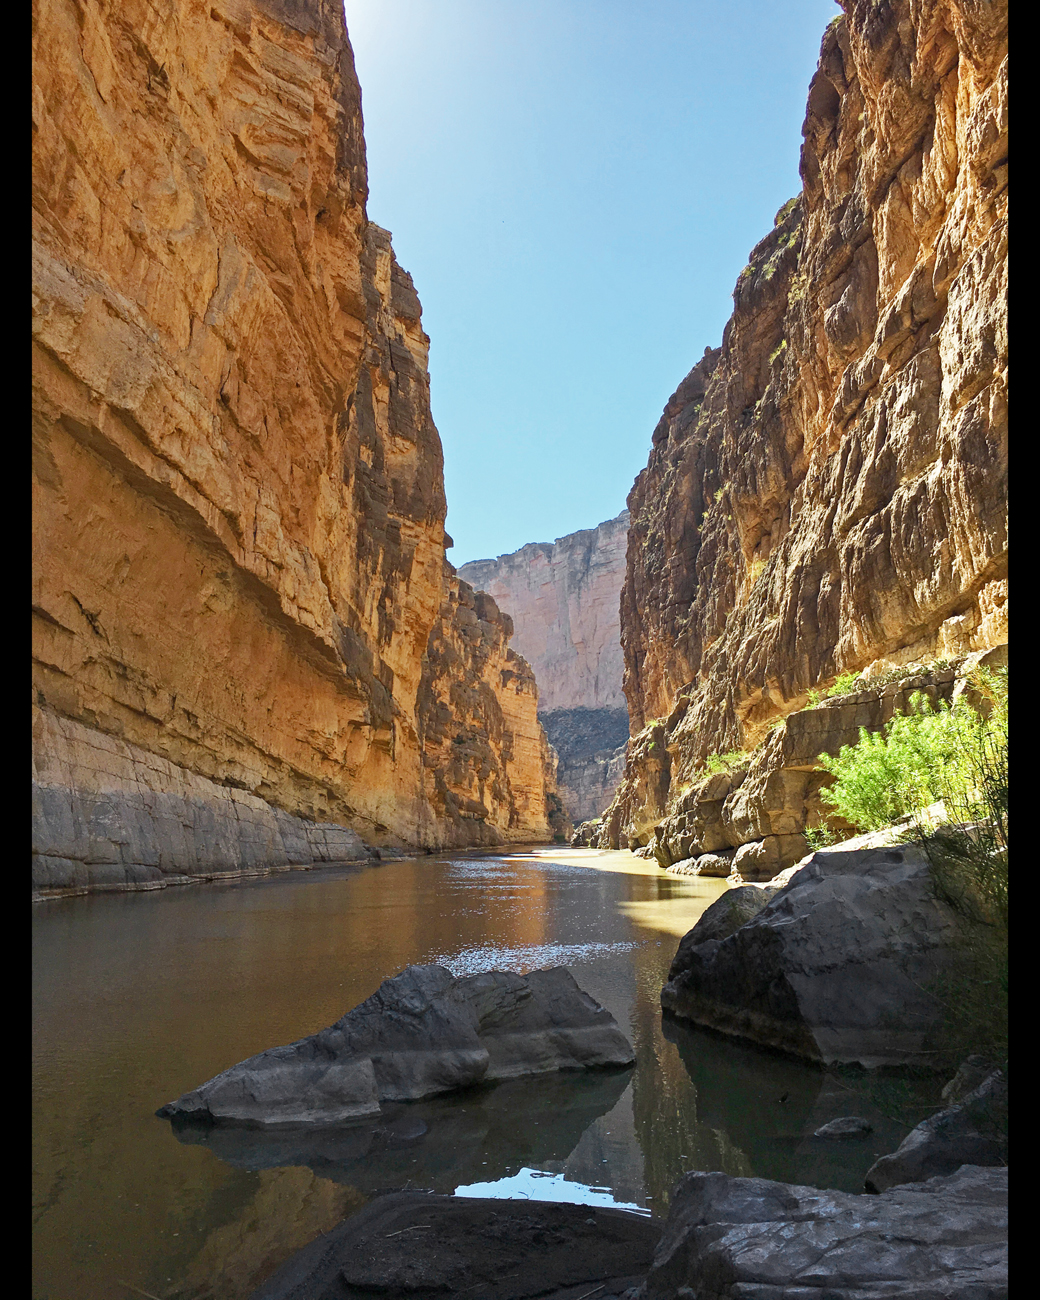 View inside Santa Elena Canyon from the river's edge with warm brown canyon walls and a boulder in the river